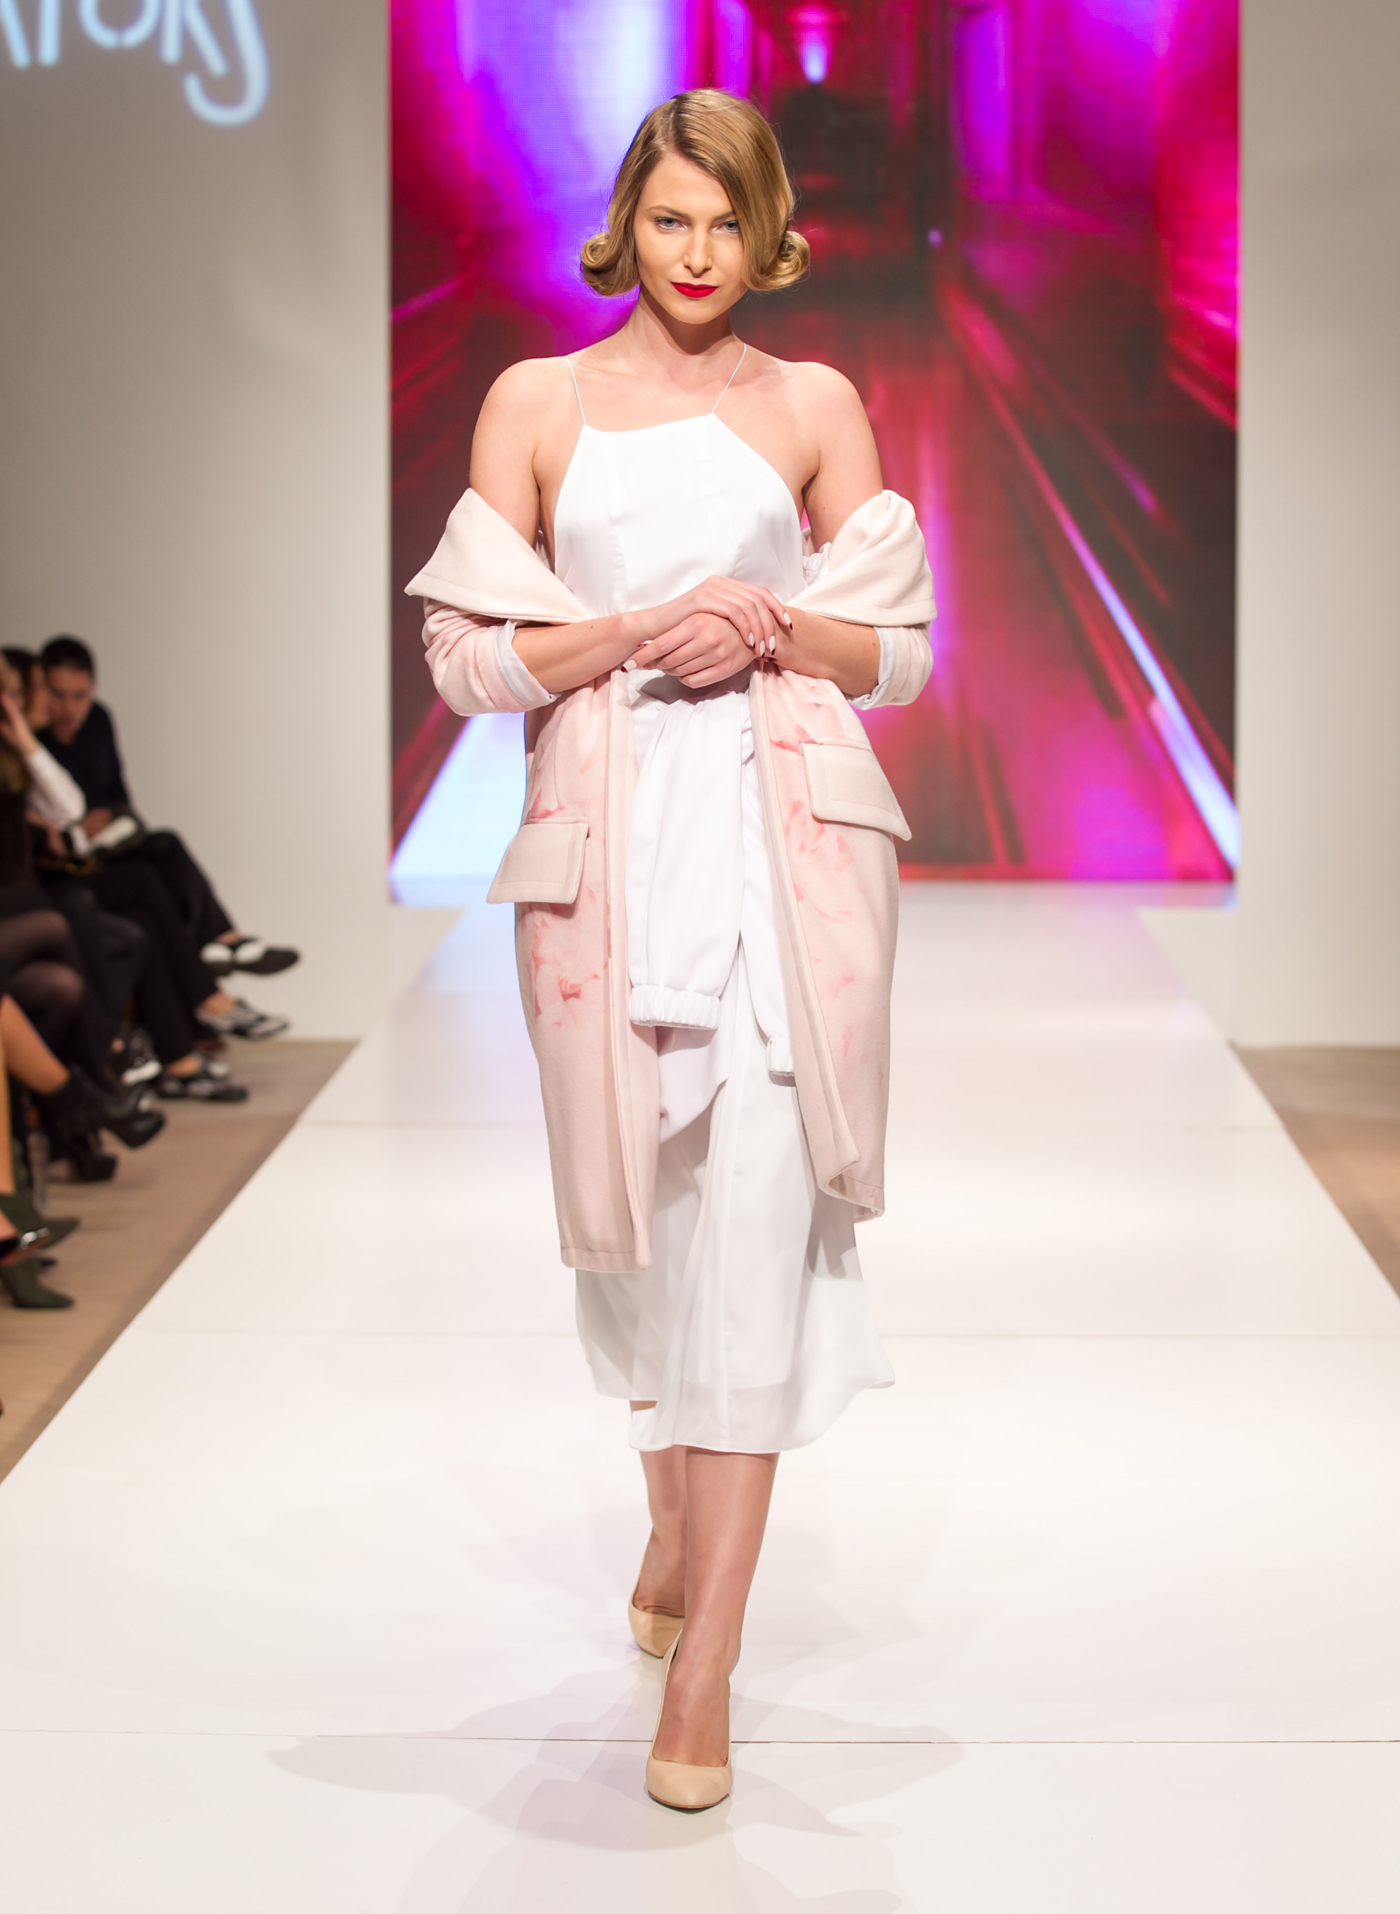 12 designeri @ Band of Creators Fashion Show, AW 2014/15